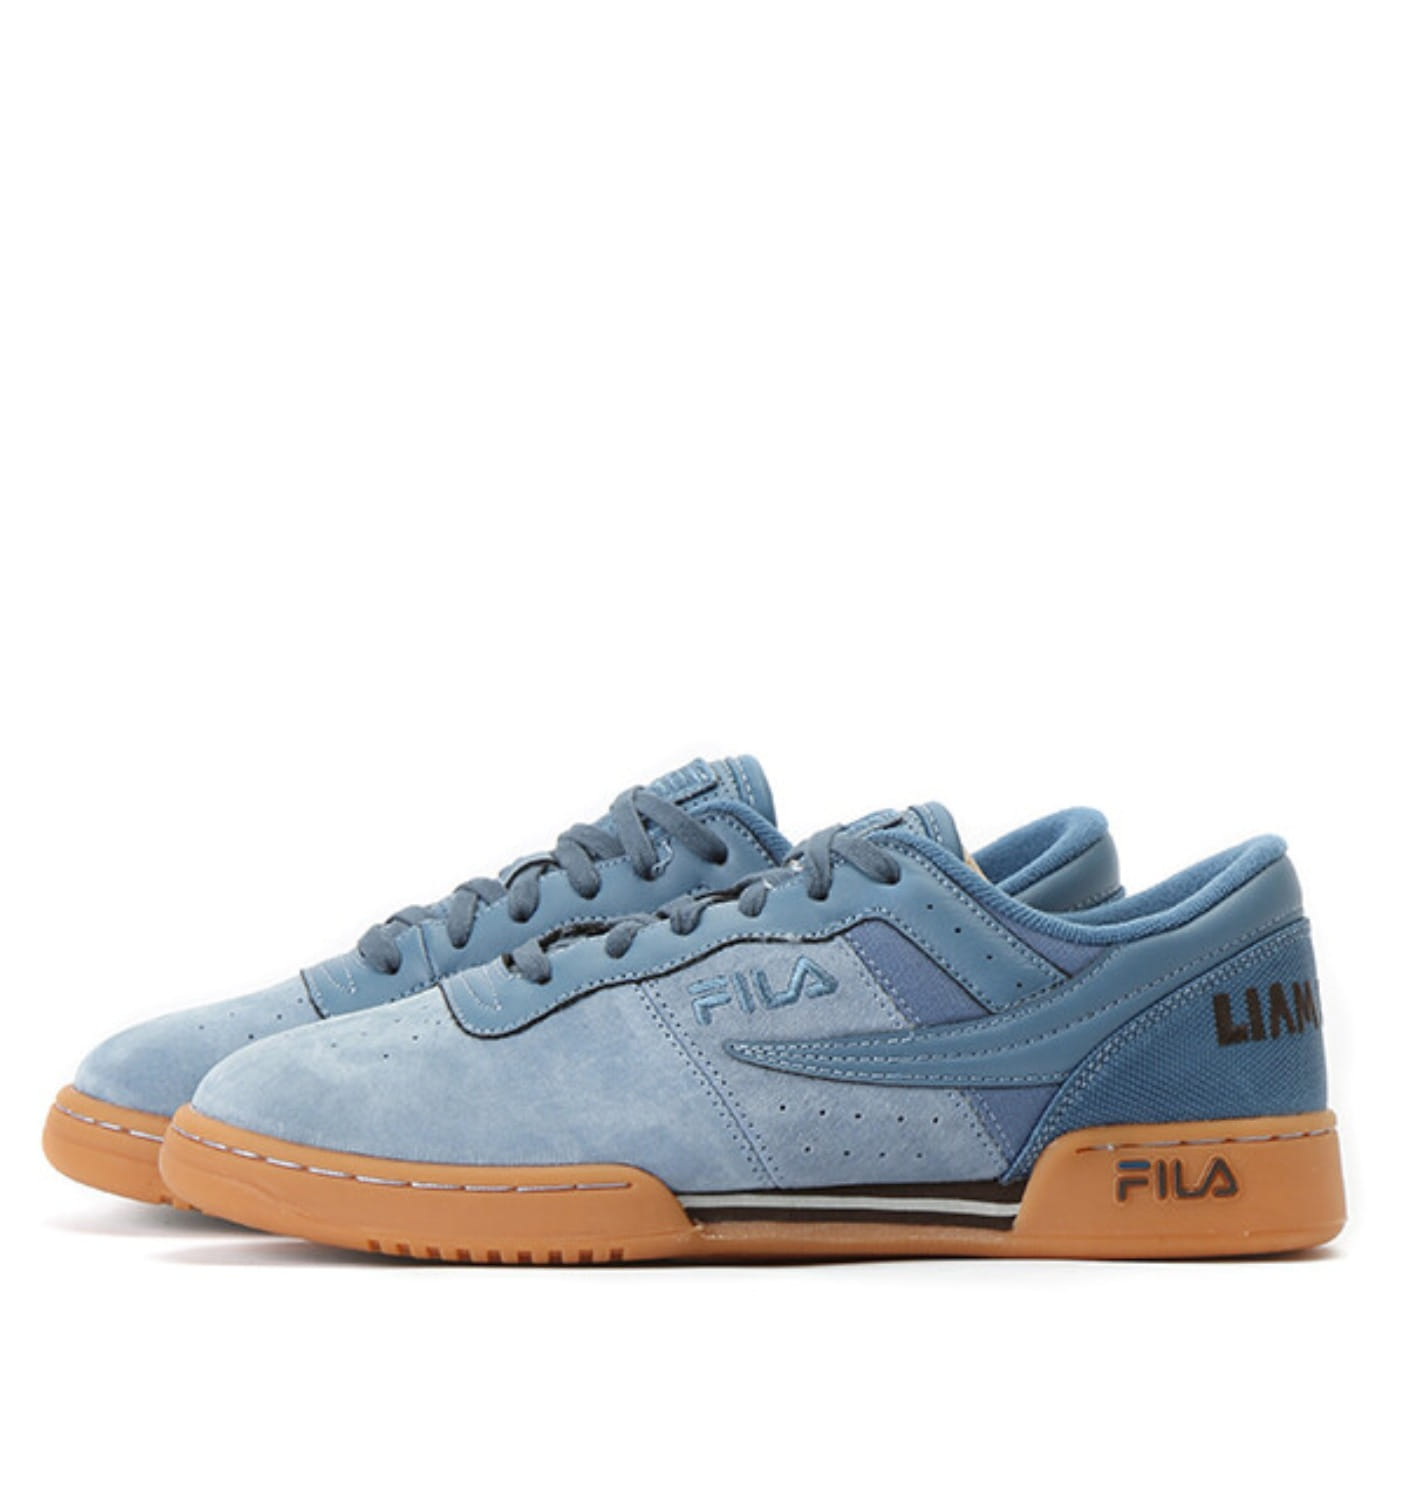 Fila x Liam Hodges ORIGINAL FITNESS BLUE